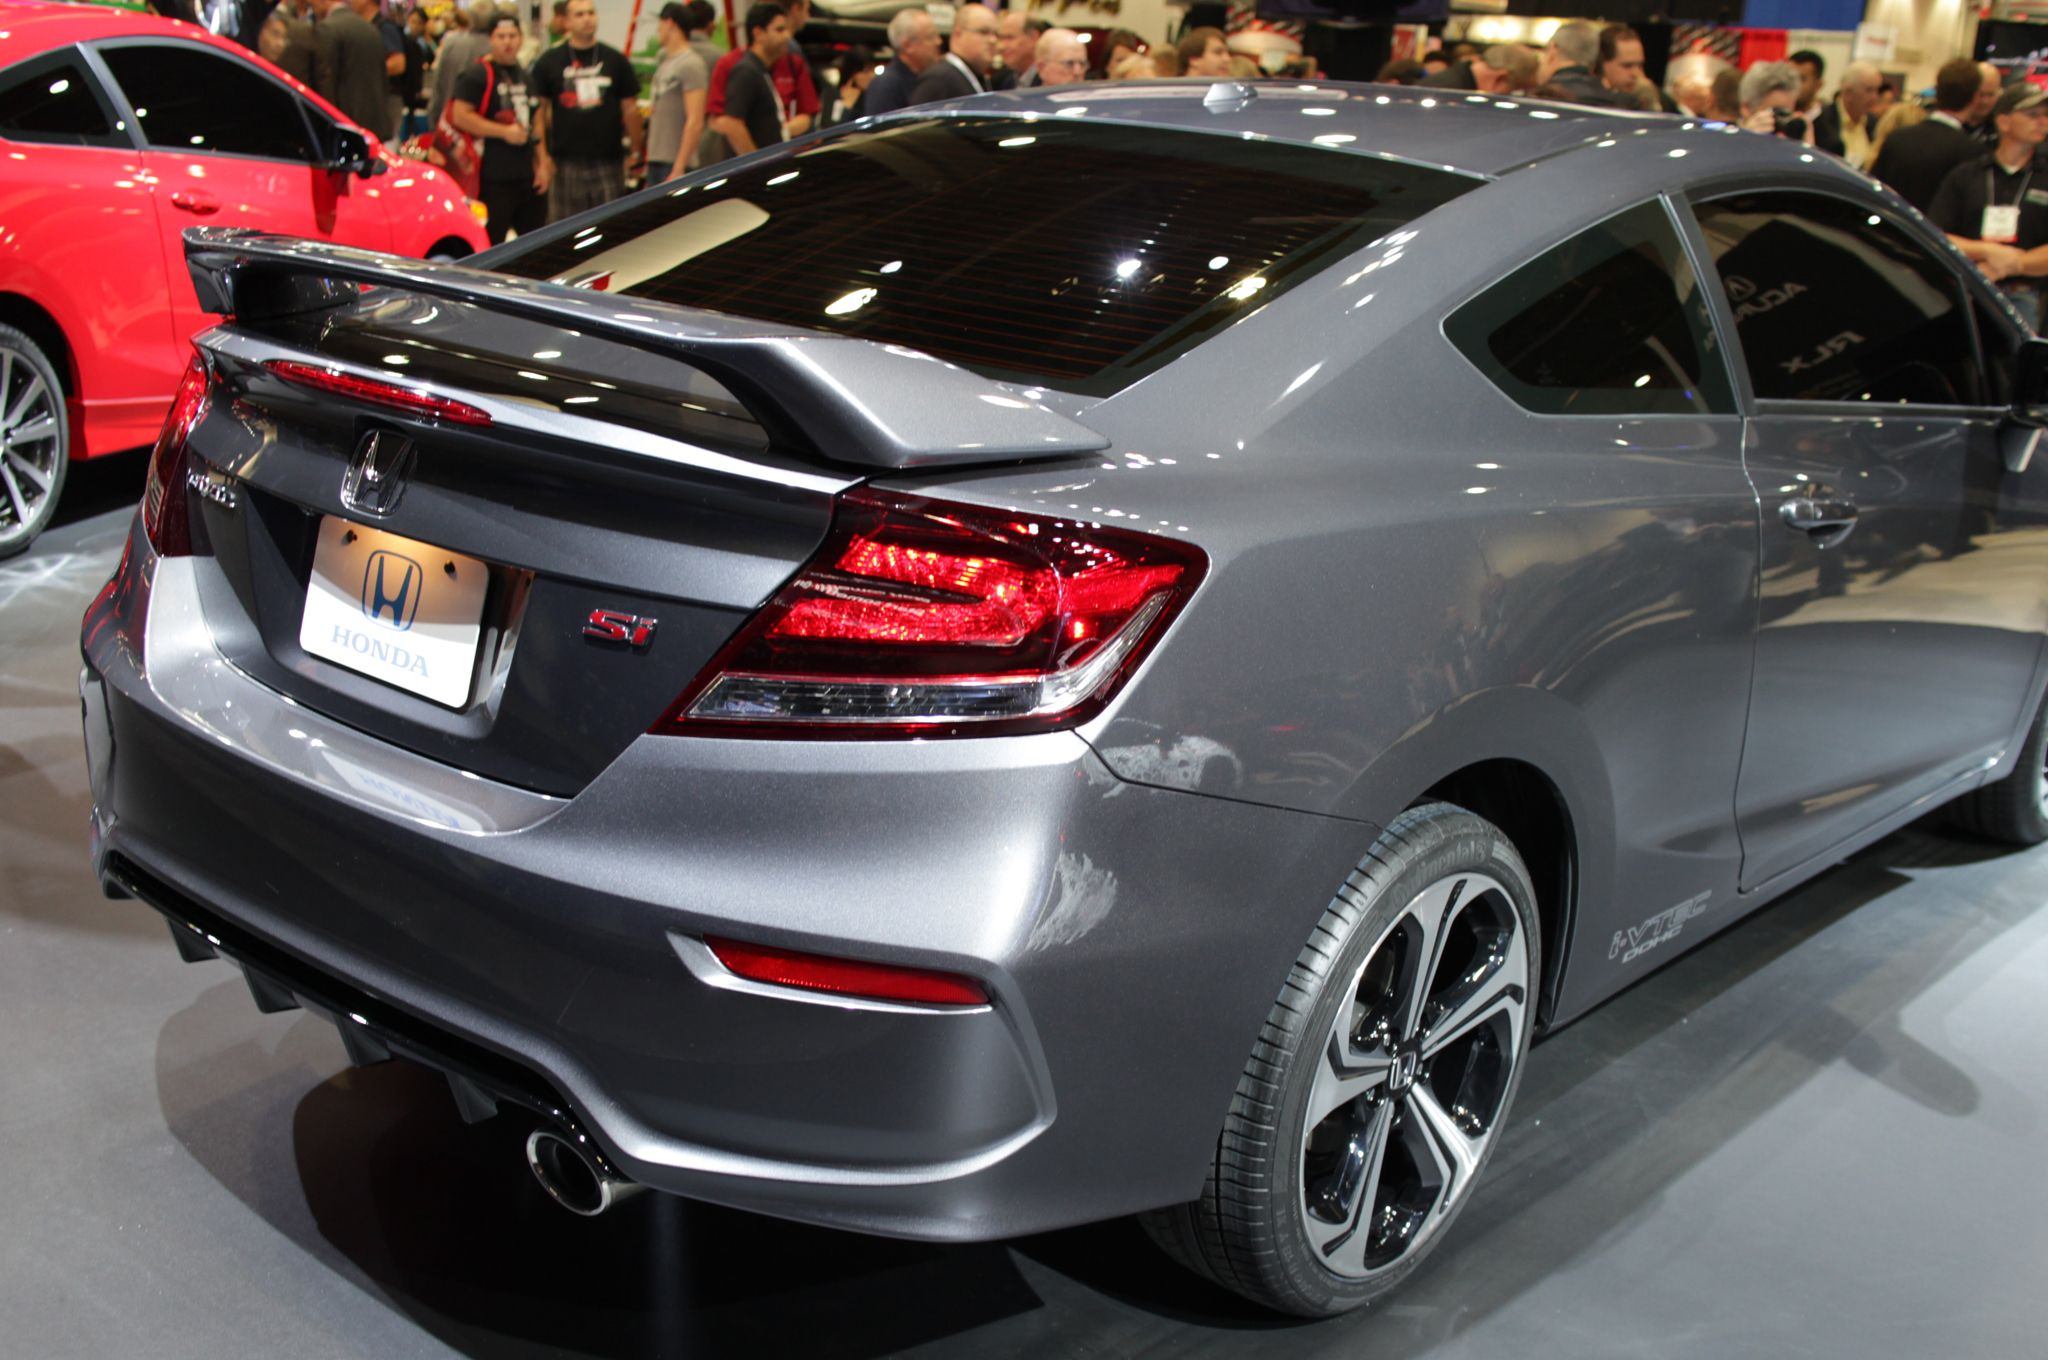 civic sale about pre with car honda breathtaking interesting for si owned photos coupe cool info